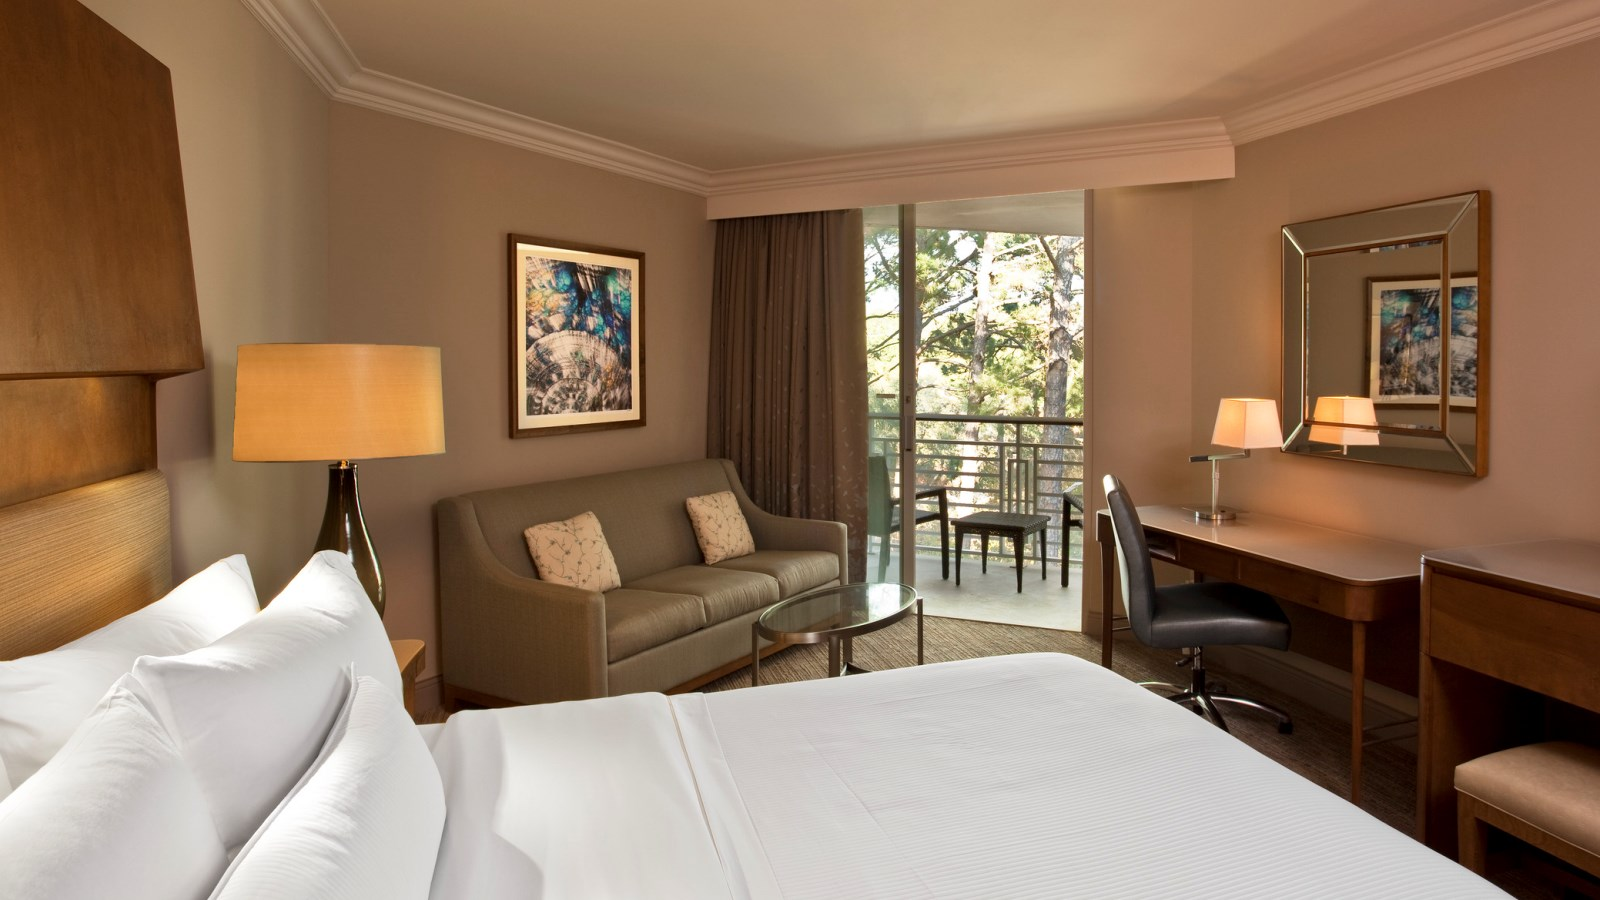 Hilton Head Hotels - The Westin - Traditional Guestroom